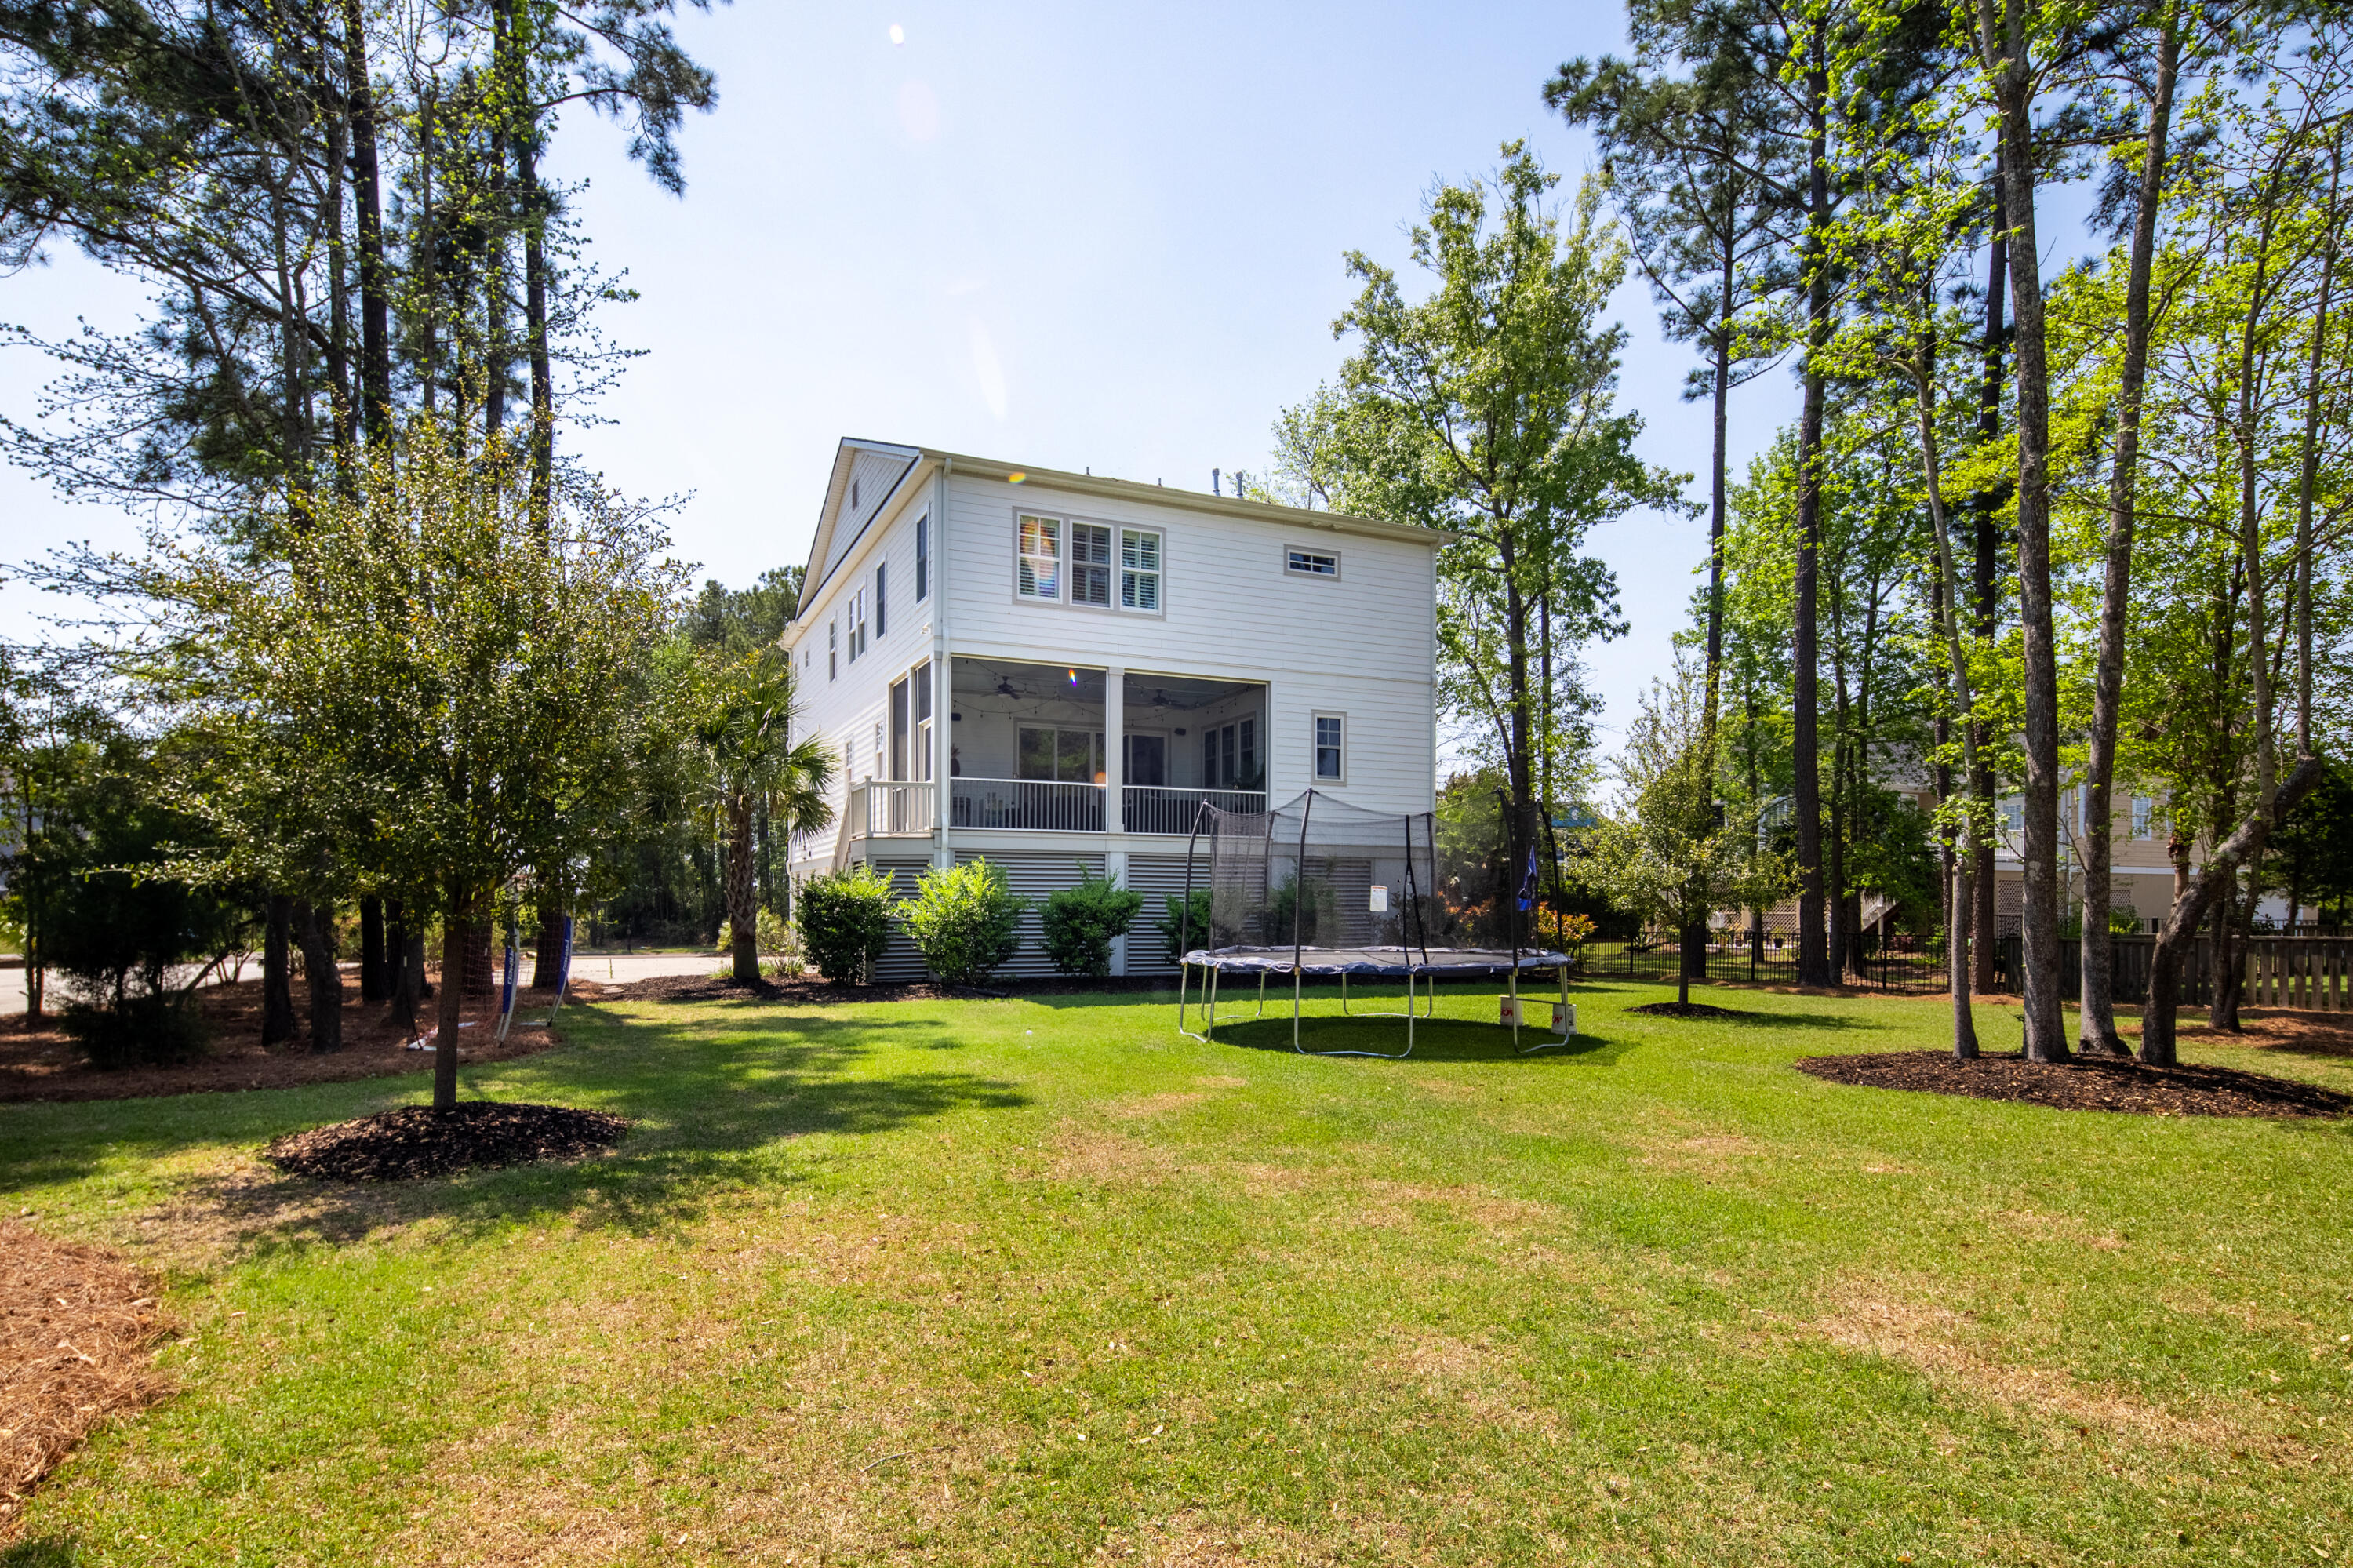 Rivertowne Country Club Homes For Sale - 1633 Rivertowne Country Club, Mount Pleasant, SC - 3